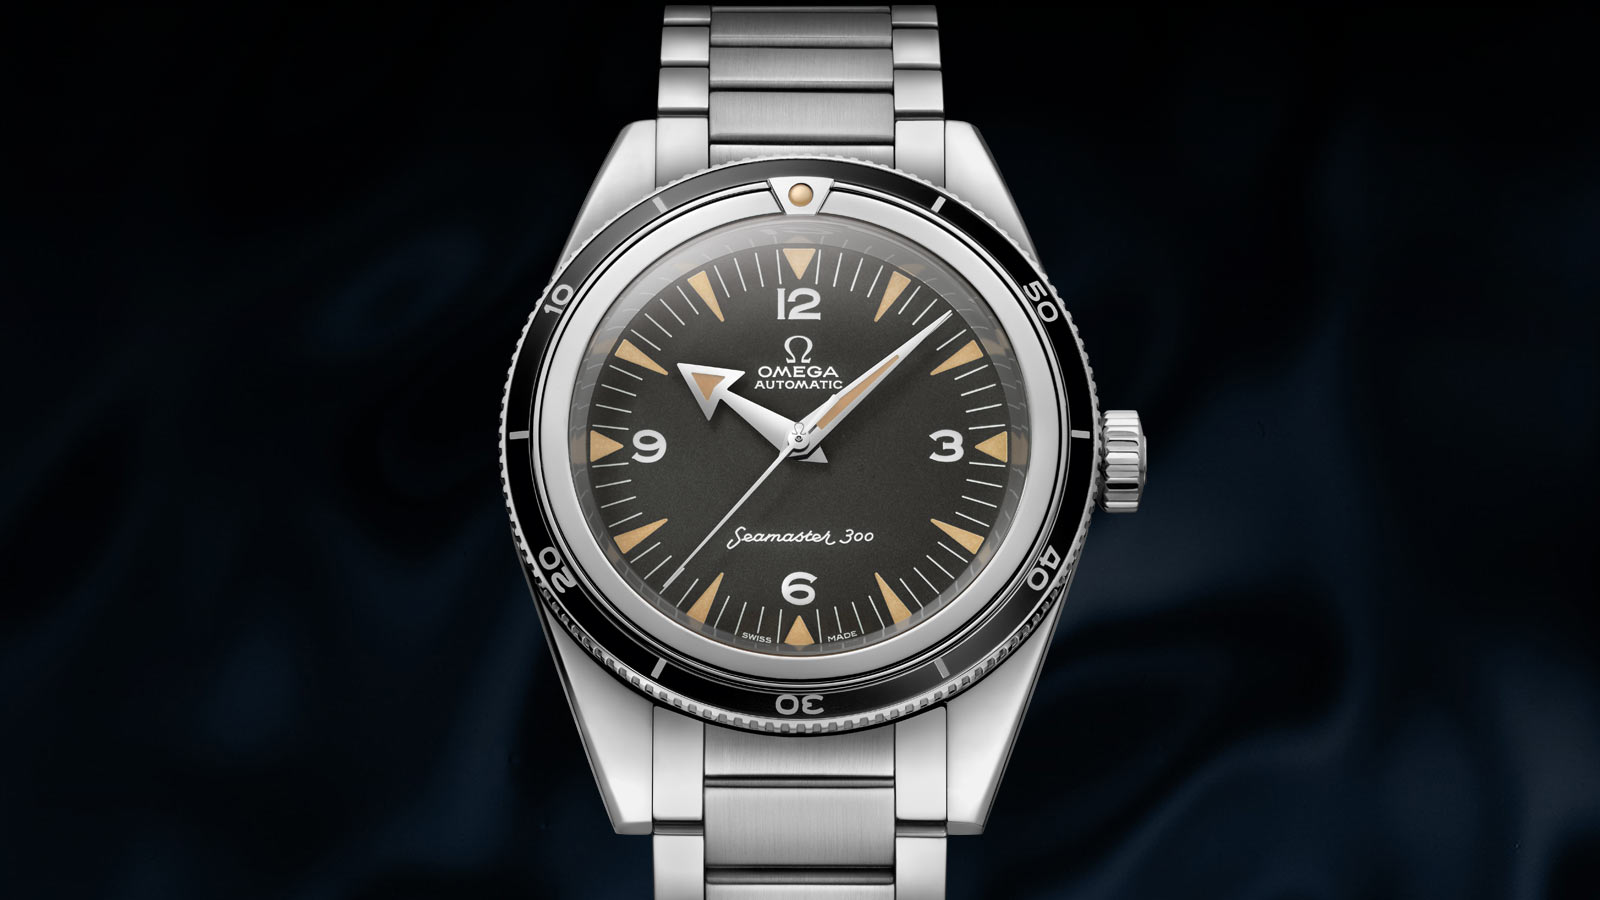 Seamaster The Collection Seamaster 300 Omega Co‑Axial Master Chronometer 39 mm - 234.10.39.20.01.001 - View 2